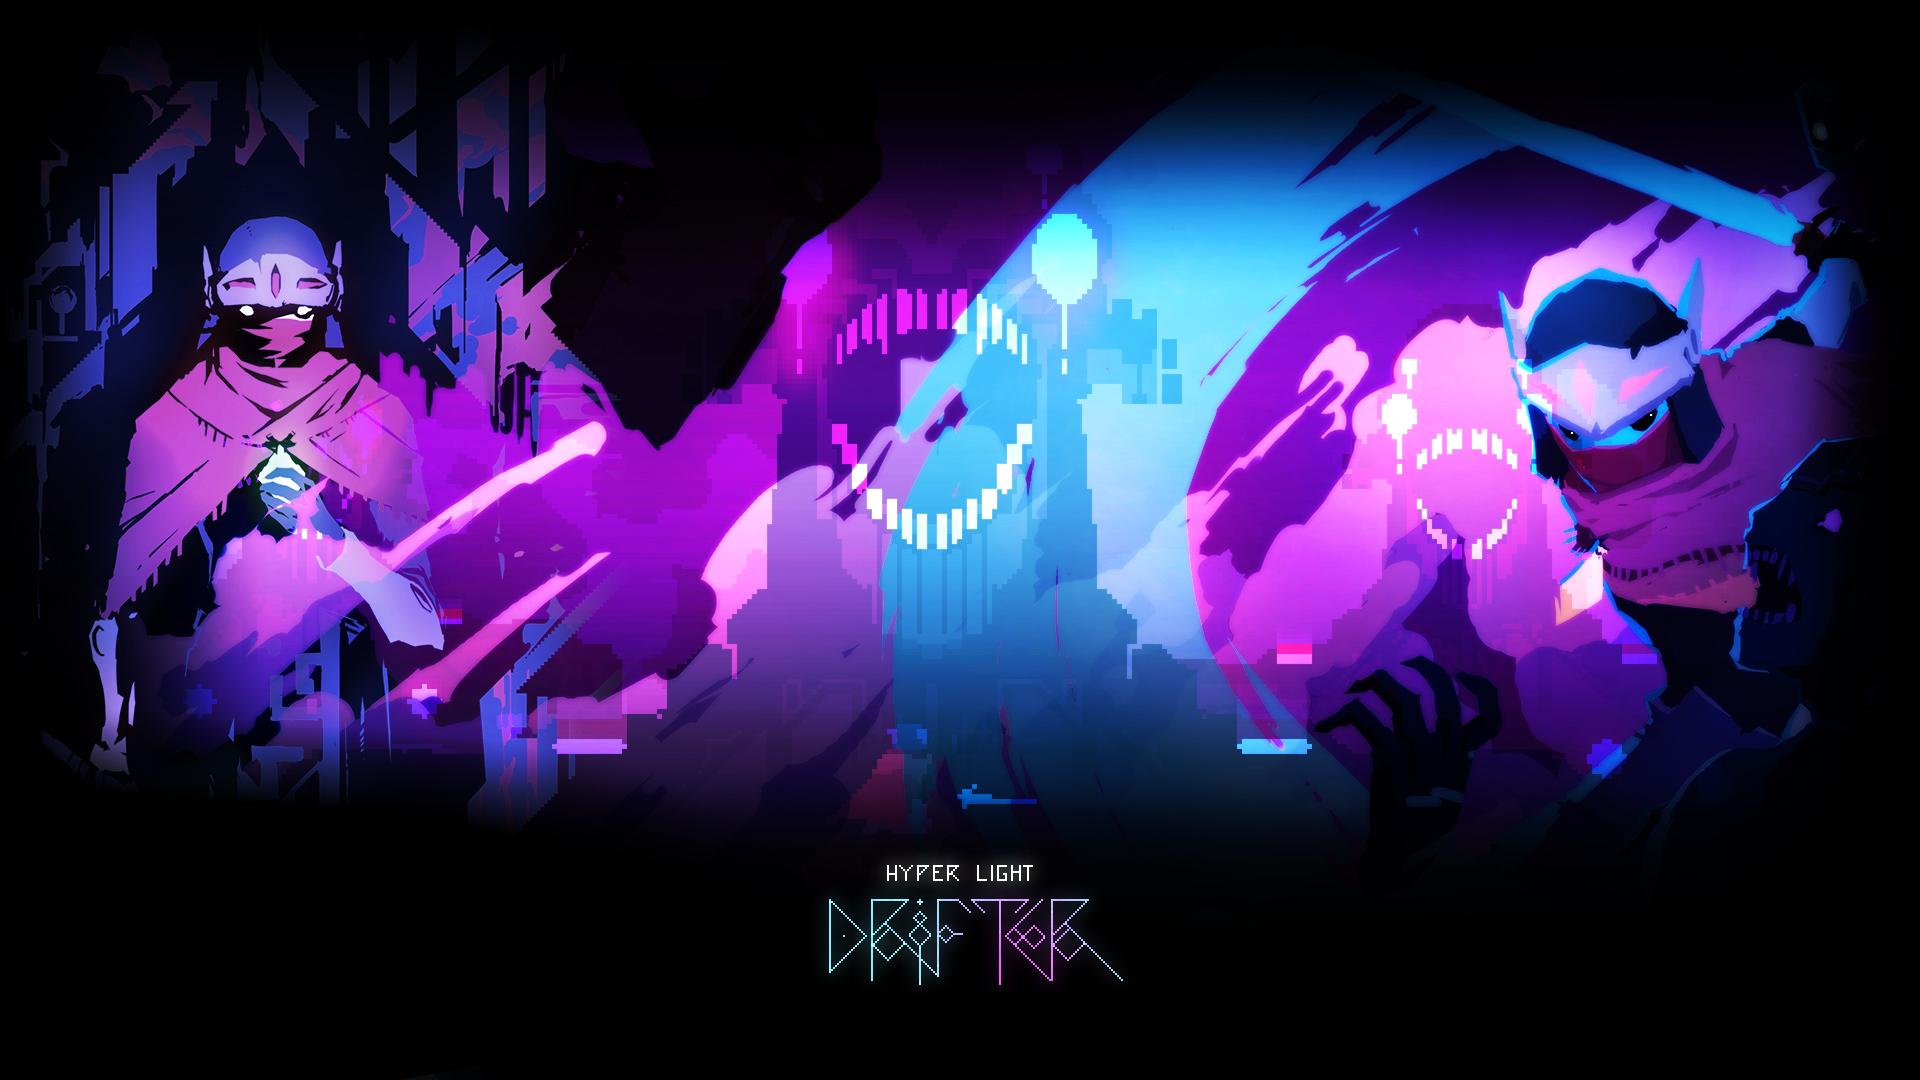 Hyper Light Drifter Wallpaper Igry